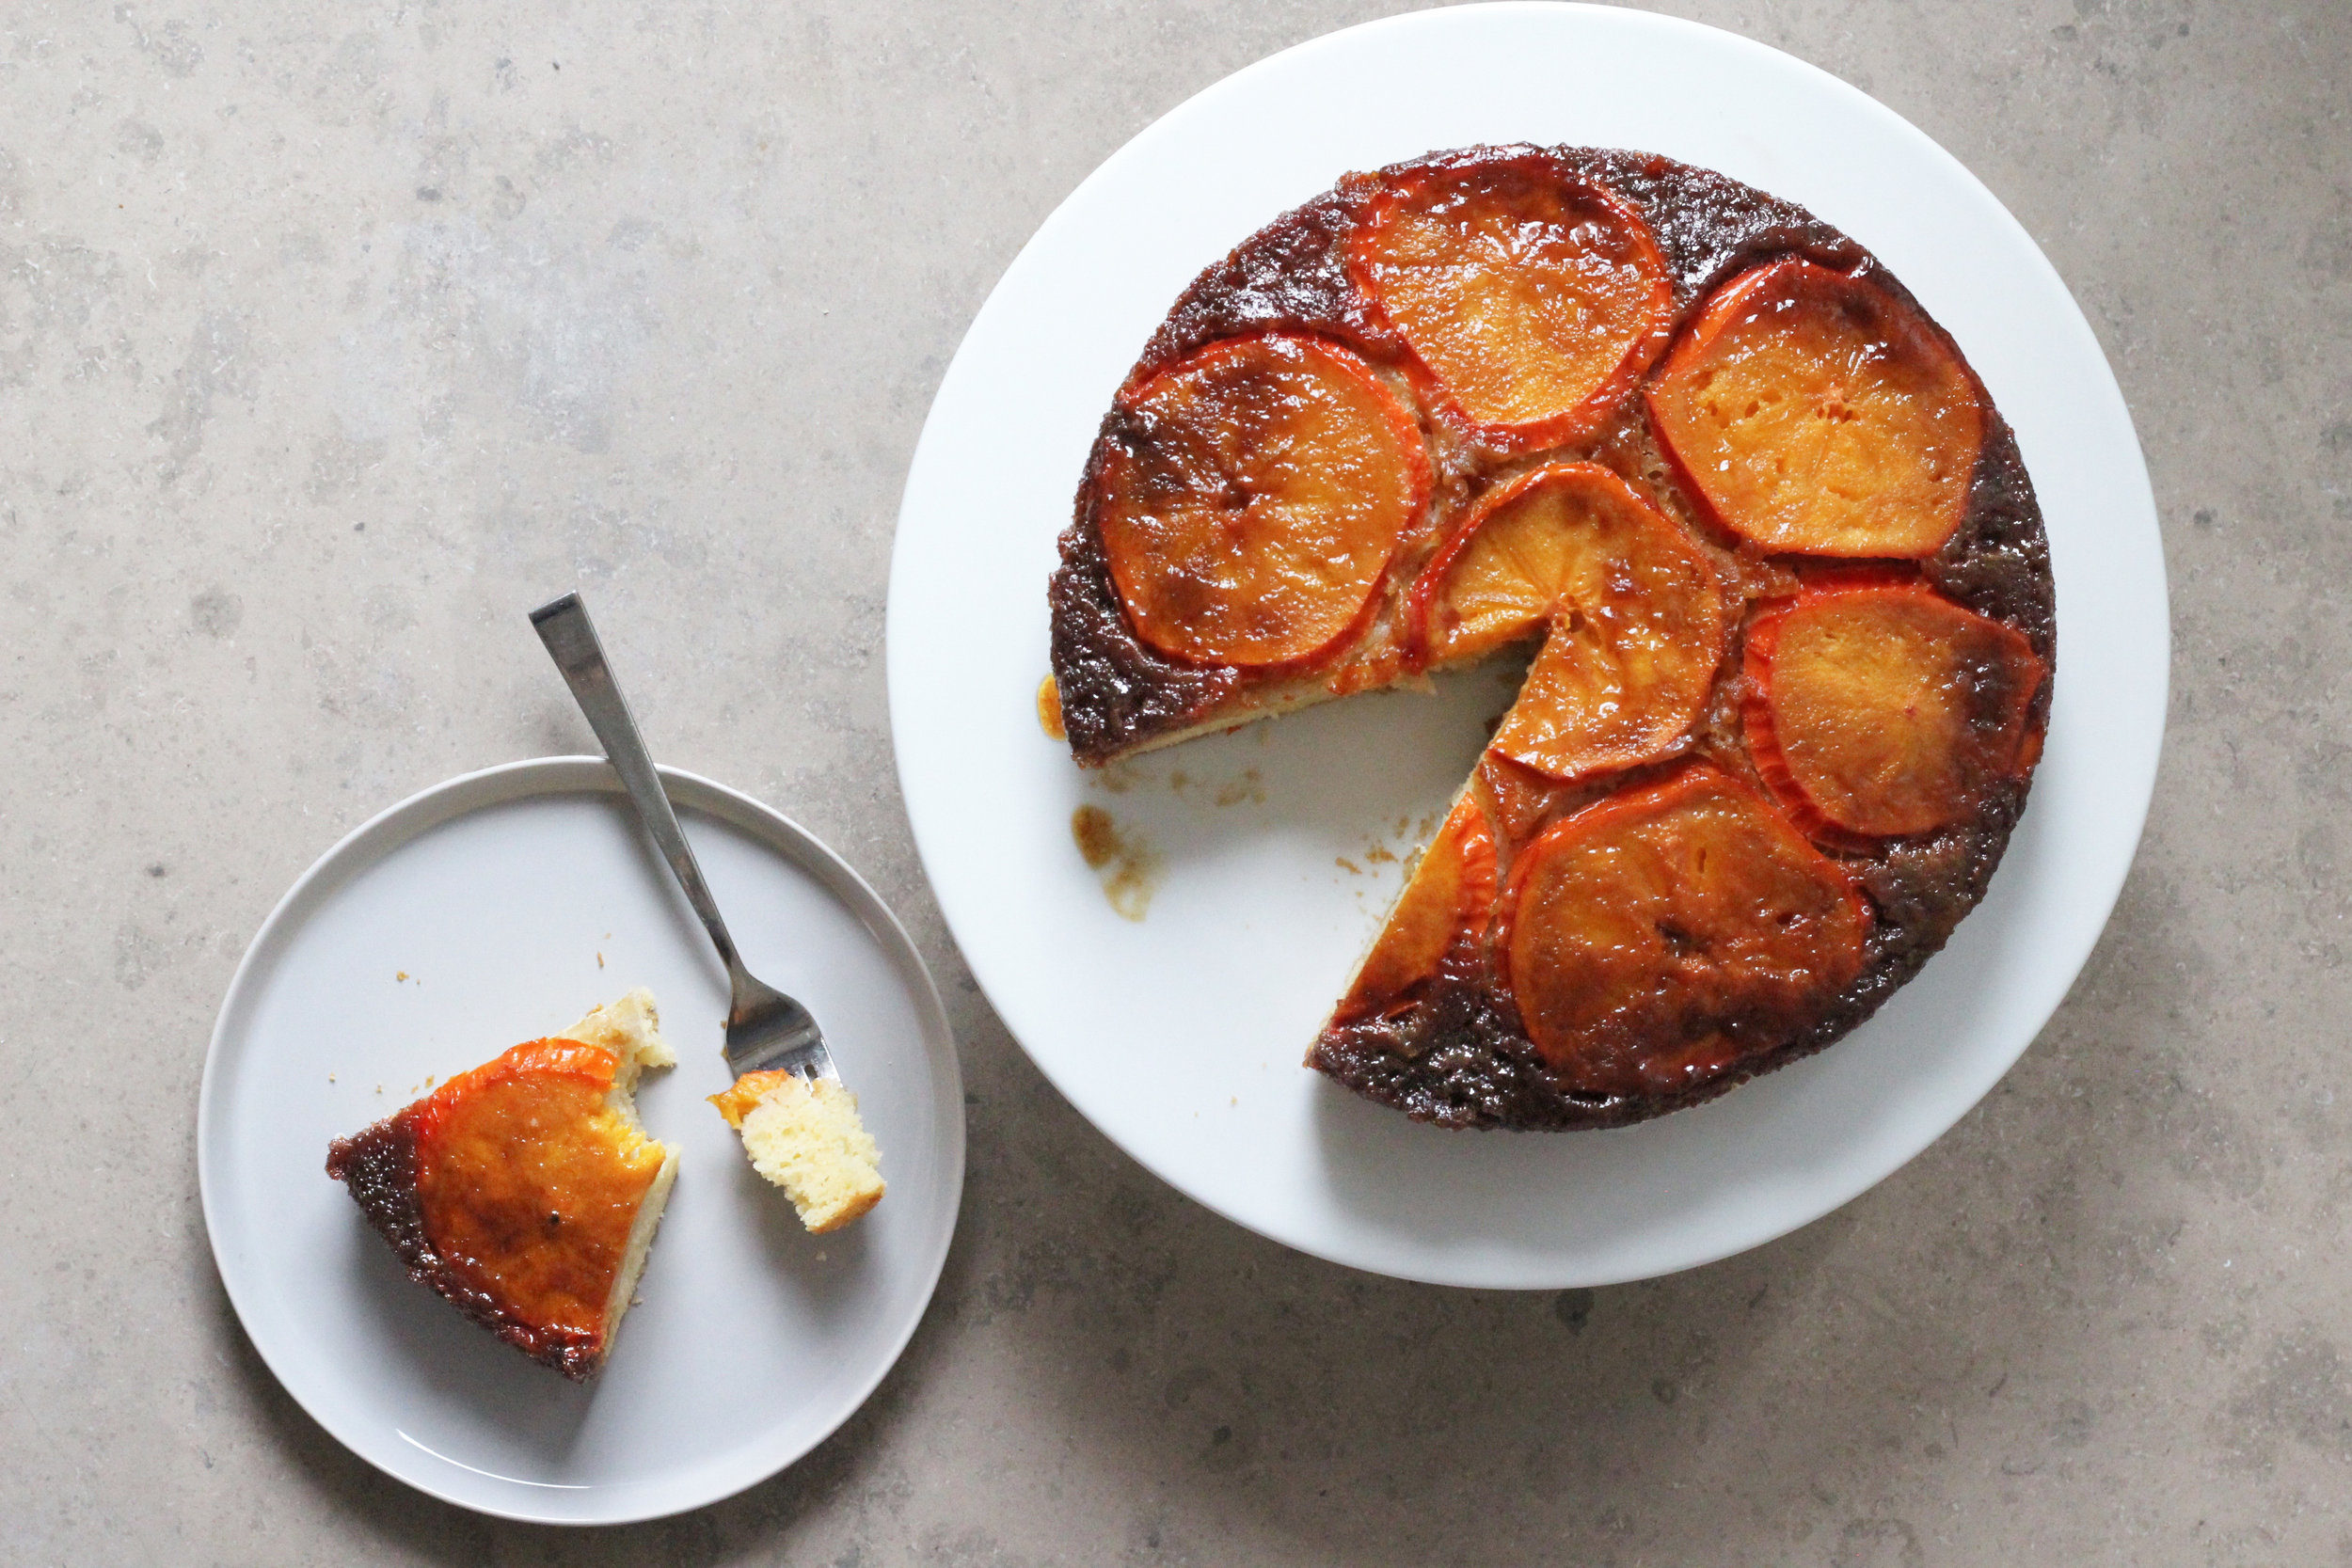 Persimmon Upside-Down Cake from Cardamom and Tea. Photo credit: Kathryn Pauline